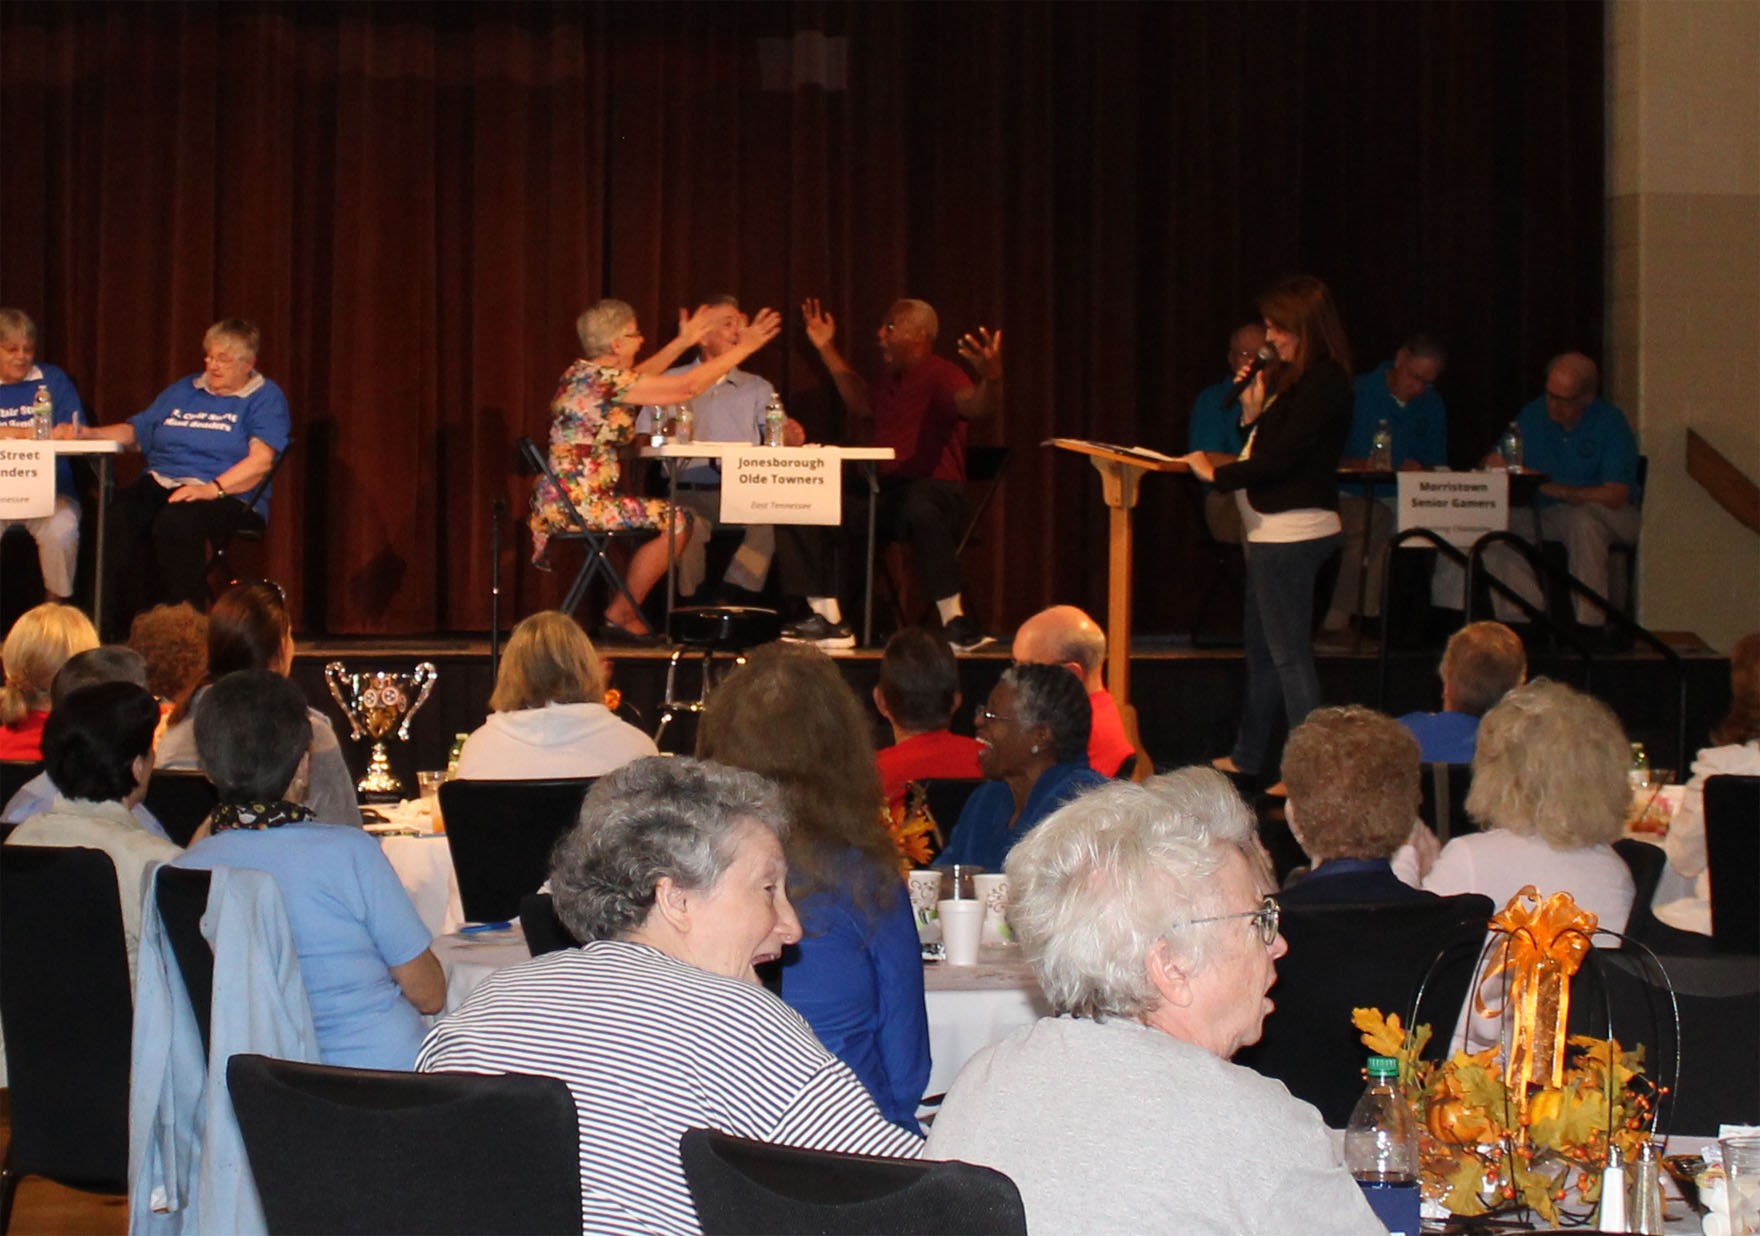 The Jonesborough Olde Towners win the 2016 Tennessee Senior Brain Games championship!